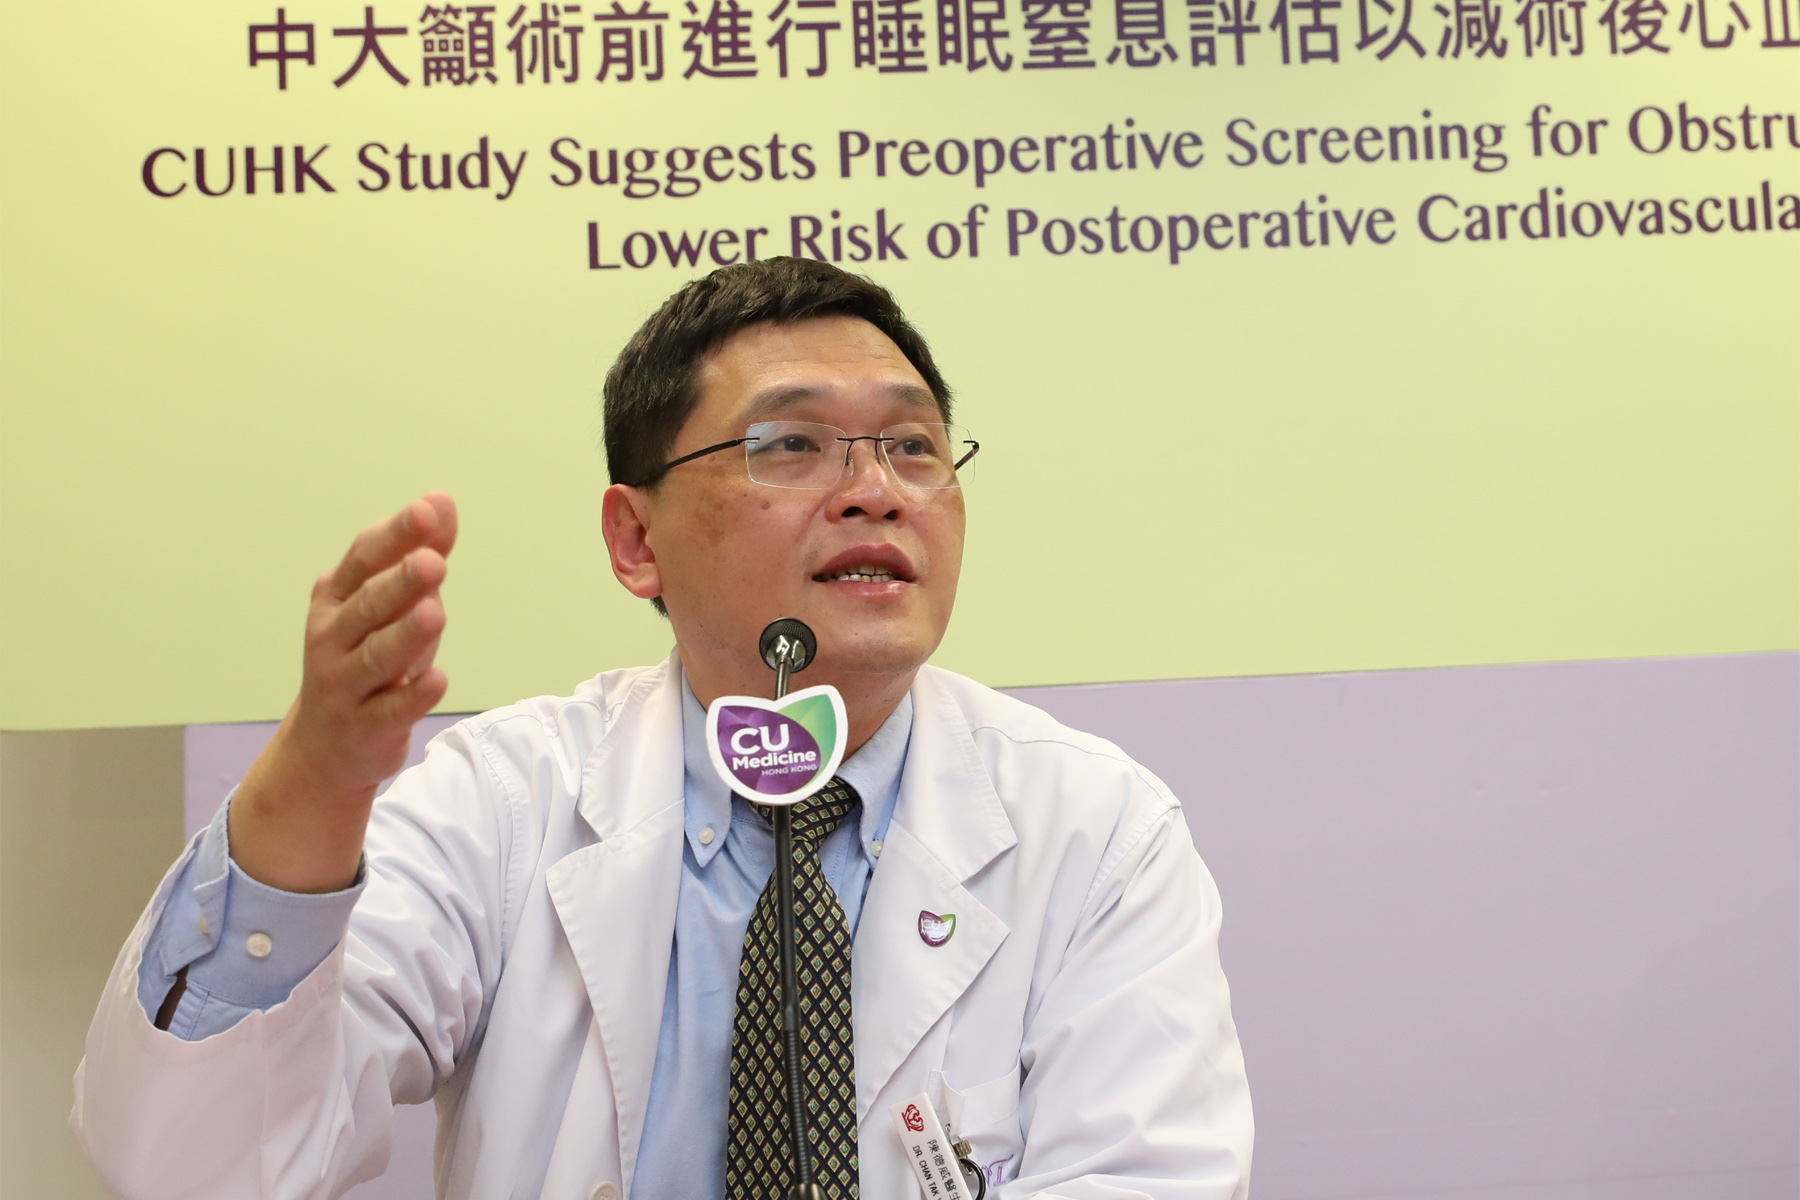 Professor Matthew Tak Vai CHAN, Professor in the Department of Anaesthesia and Intensive Care, Faculty of Medicine at CUHK says treatment such as oxygen therapy and positive airway pressure may help patients with severe OSA lower the risk of postoperative cardiovascular complications, as conditions like nocturnal hypoxia reduce.